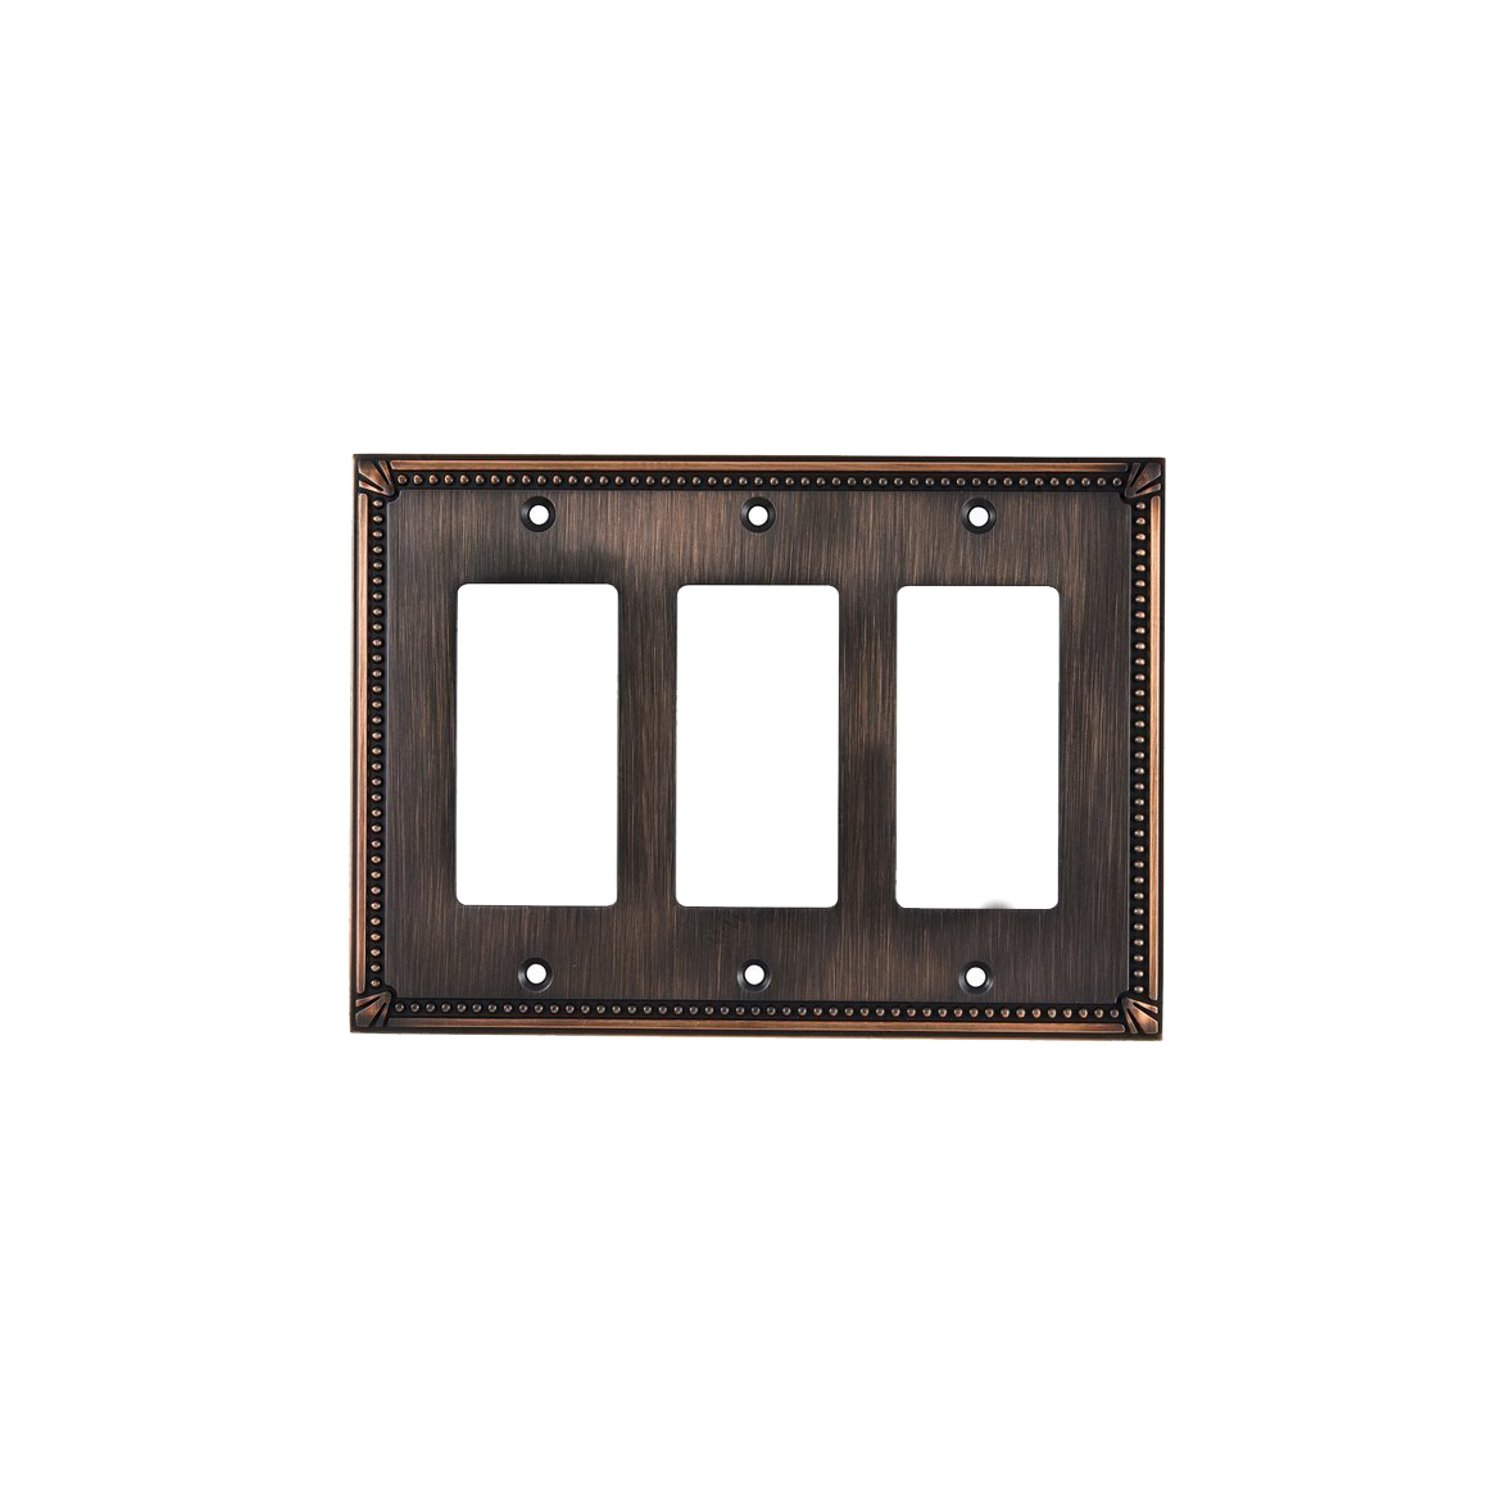 Rok Hardware Wall Light Decora Switch Plate Rocker Toggle GFCI Cover Traditional Brushed Oil-Rubbed Bronze 3 Gang